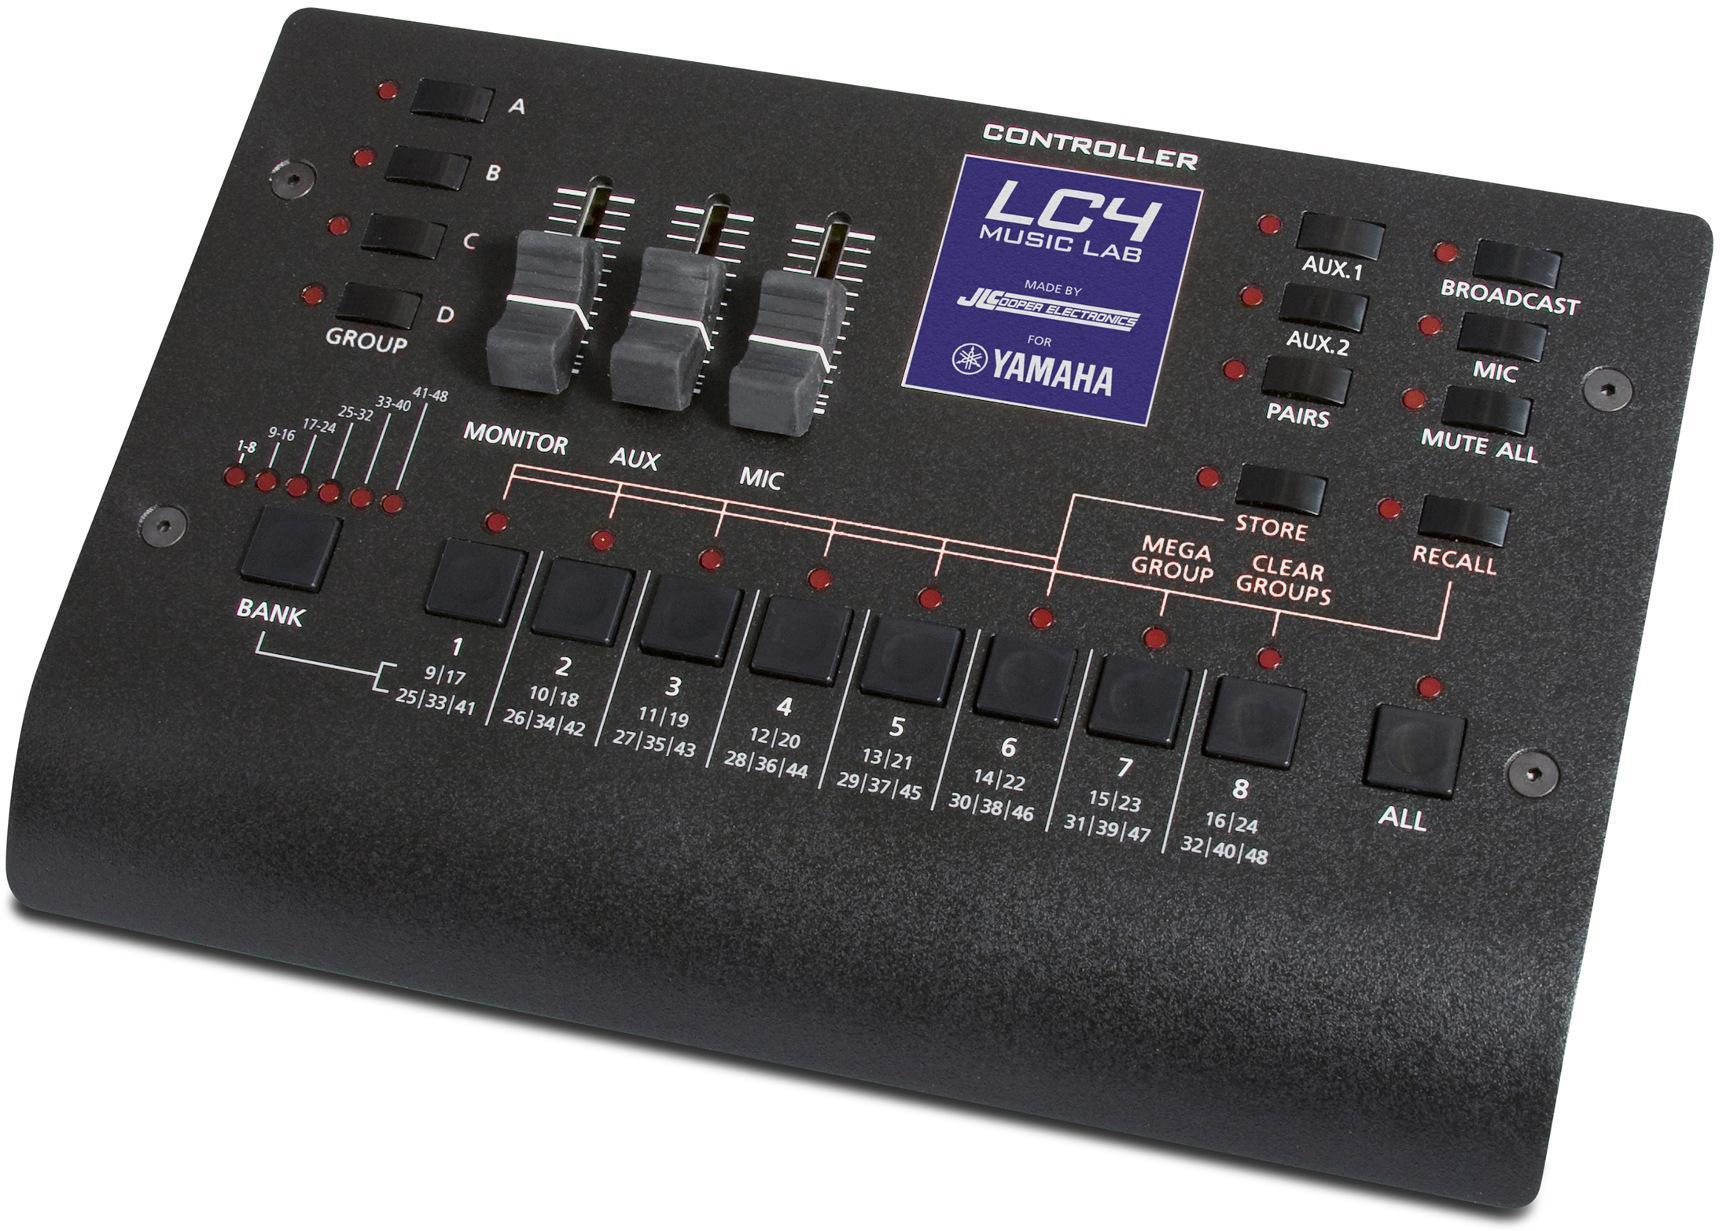 Yamaha Lc4 Base 8 Student Master Controller With Hardware